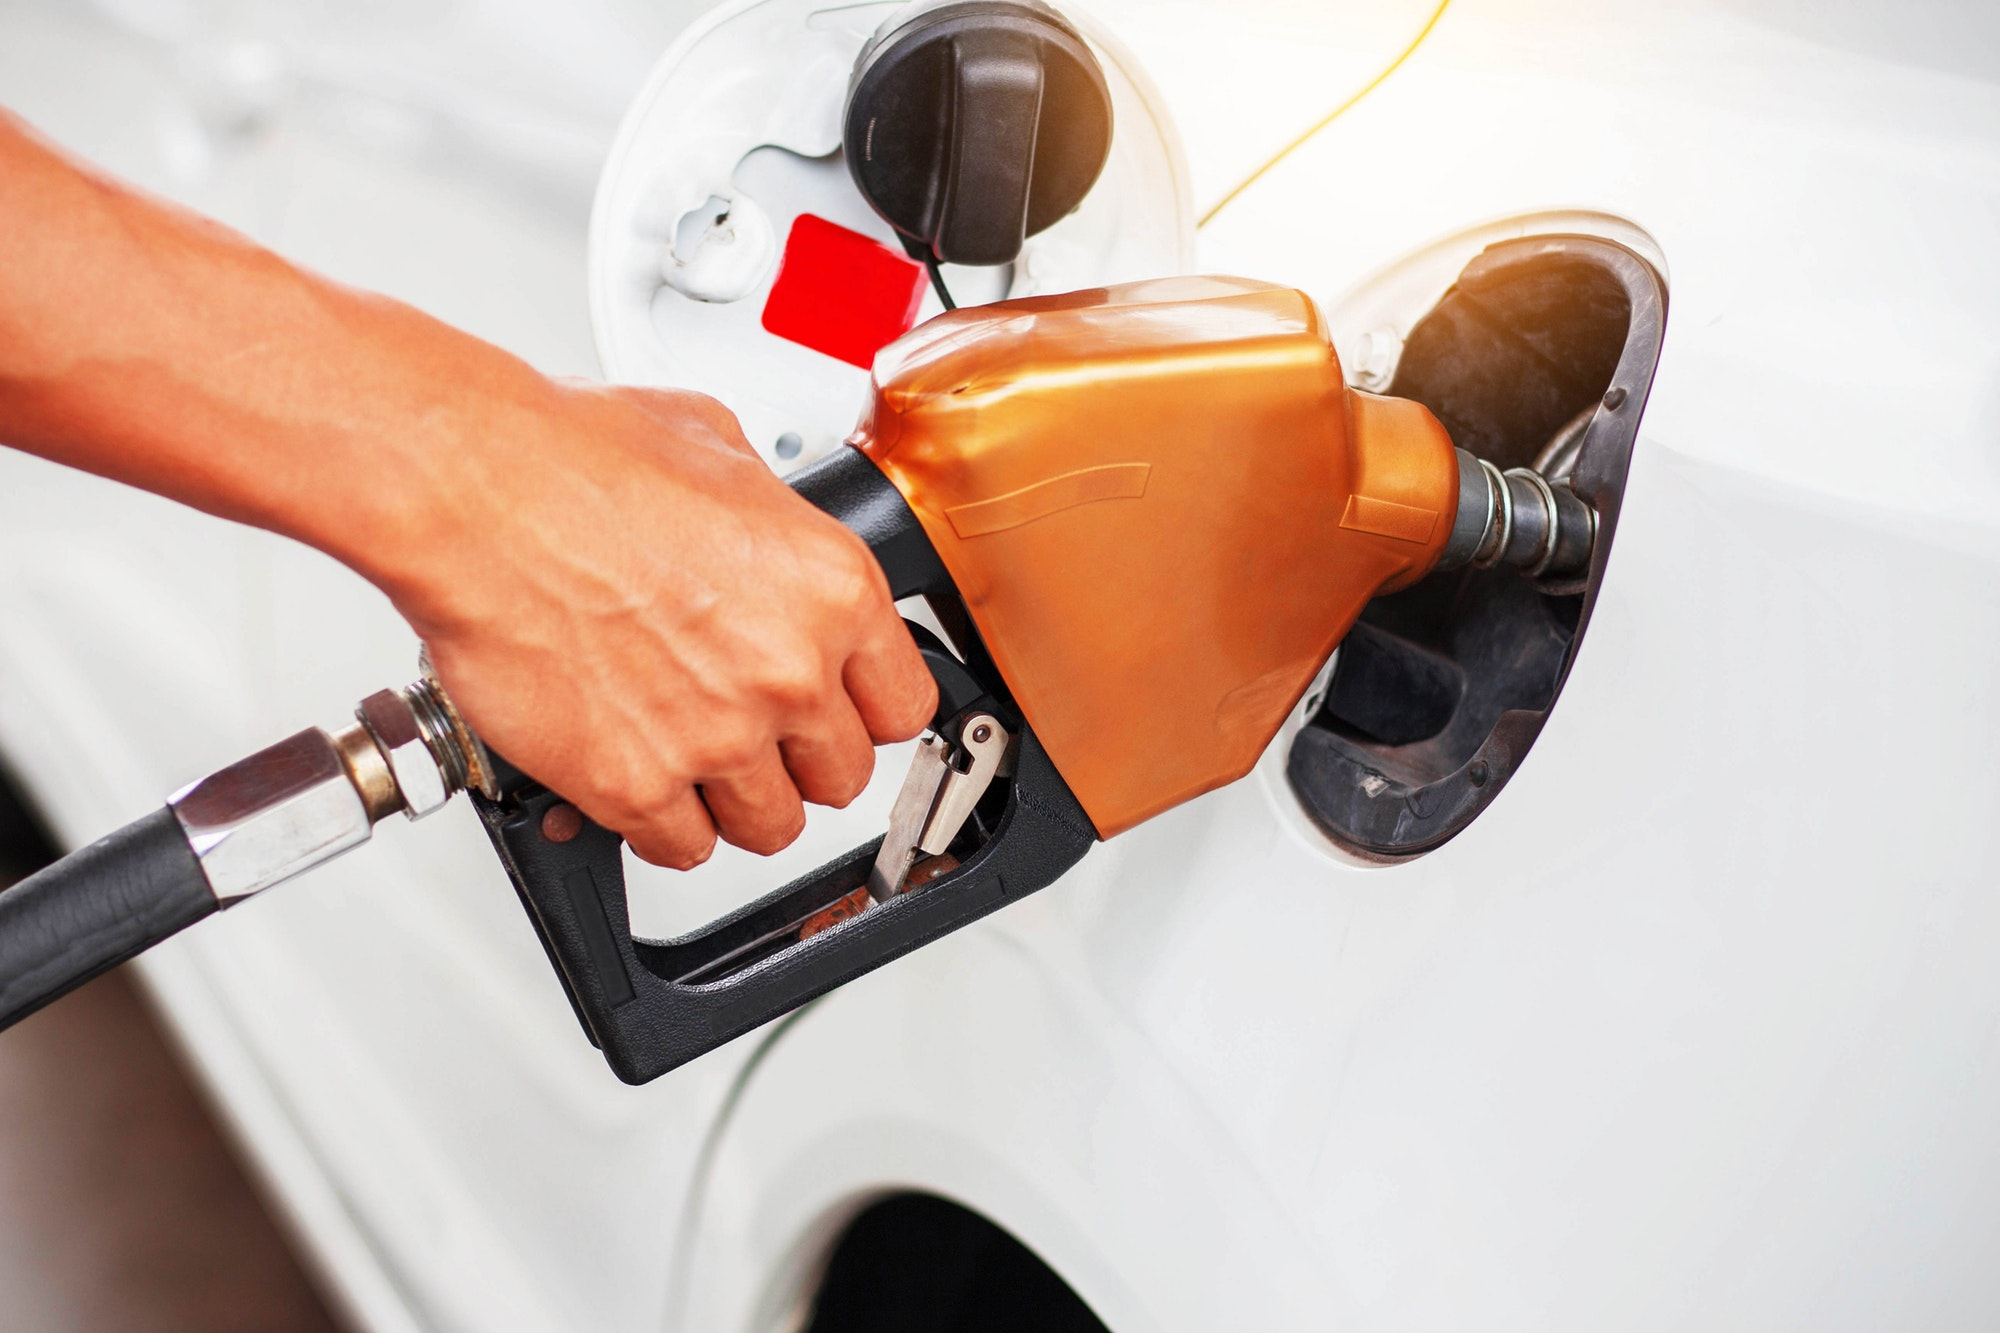 Handle fuel in the car